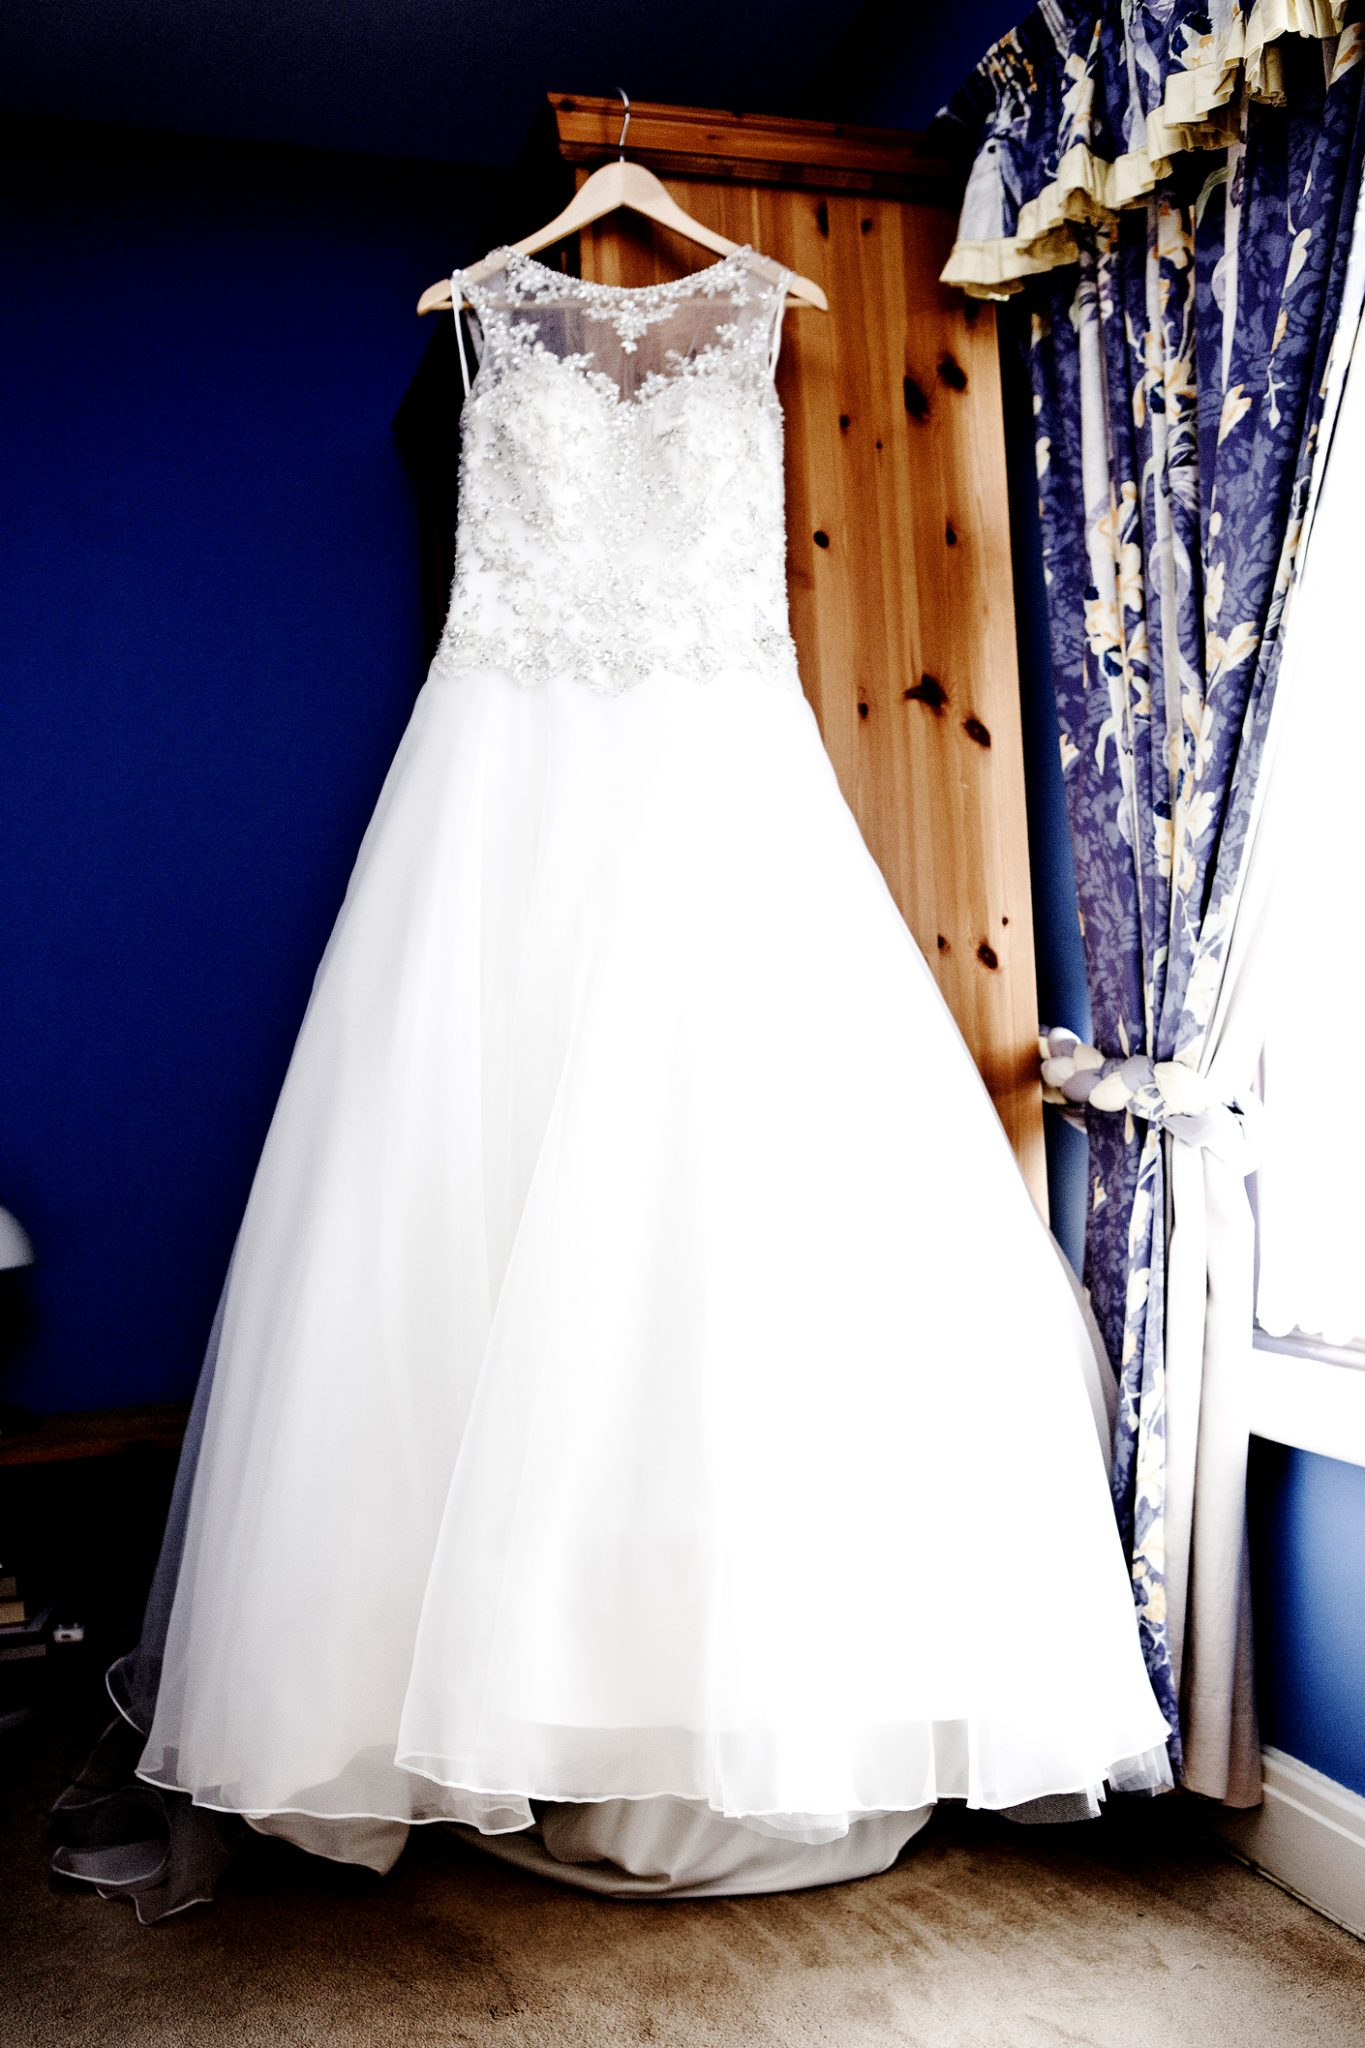 wedding-photography-of-the-wedding-dress-in-congleton-cheshire